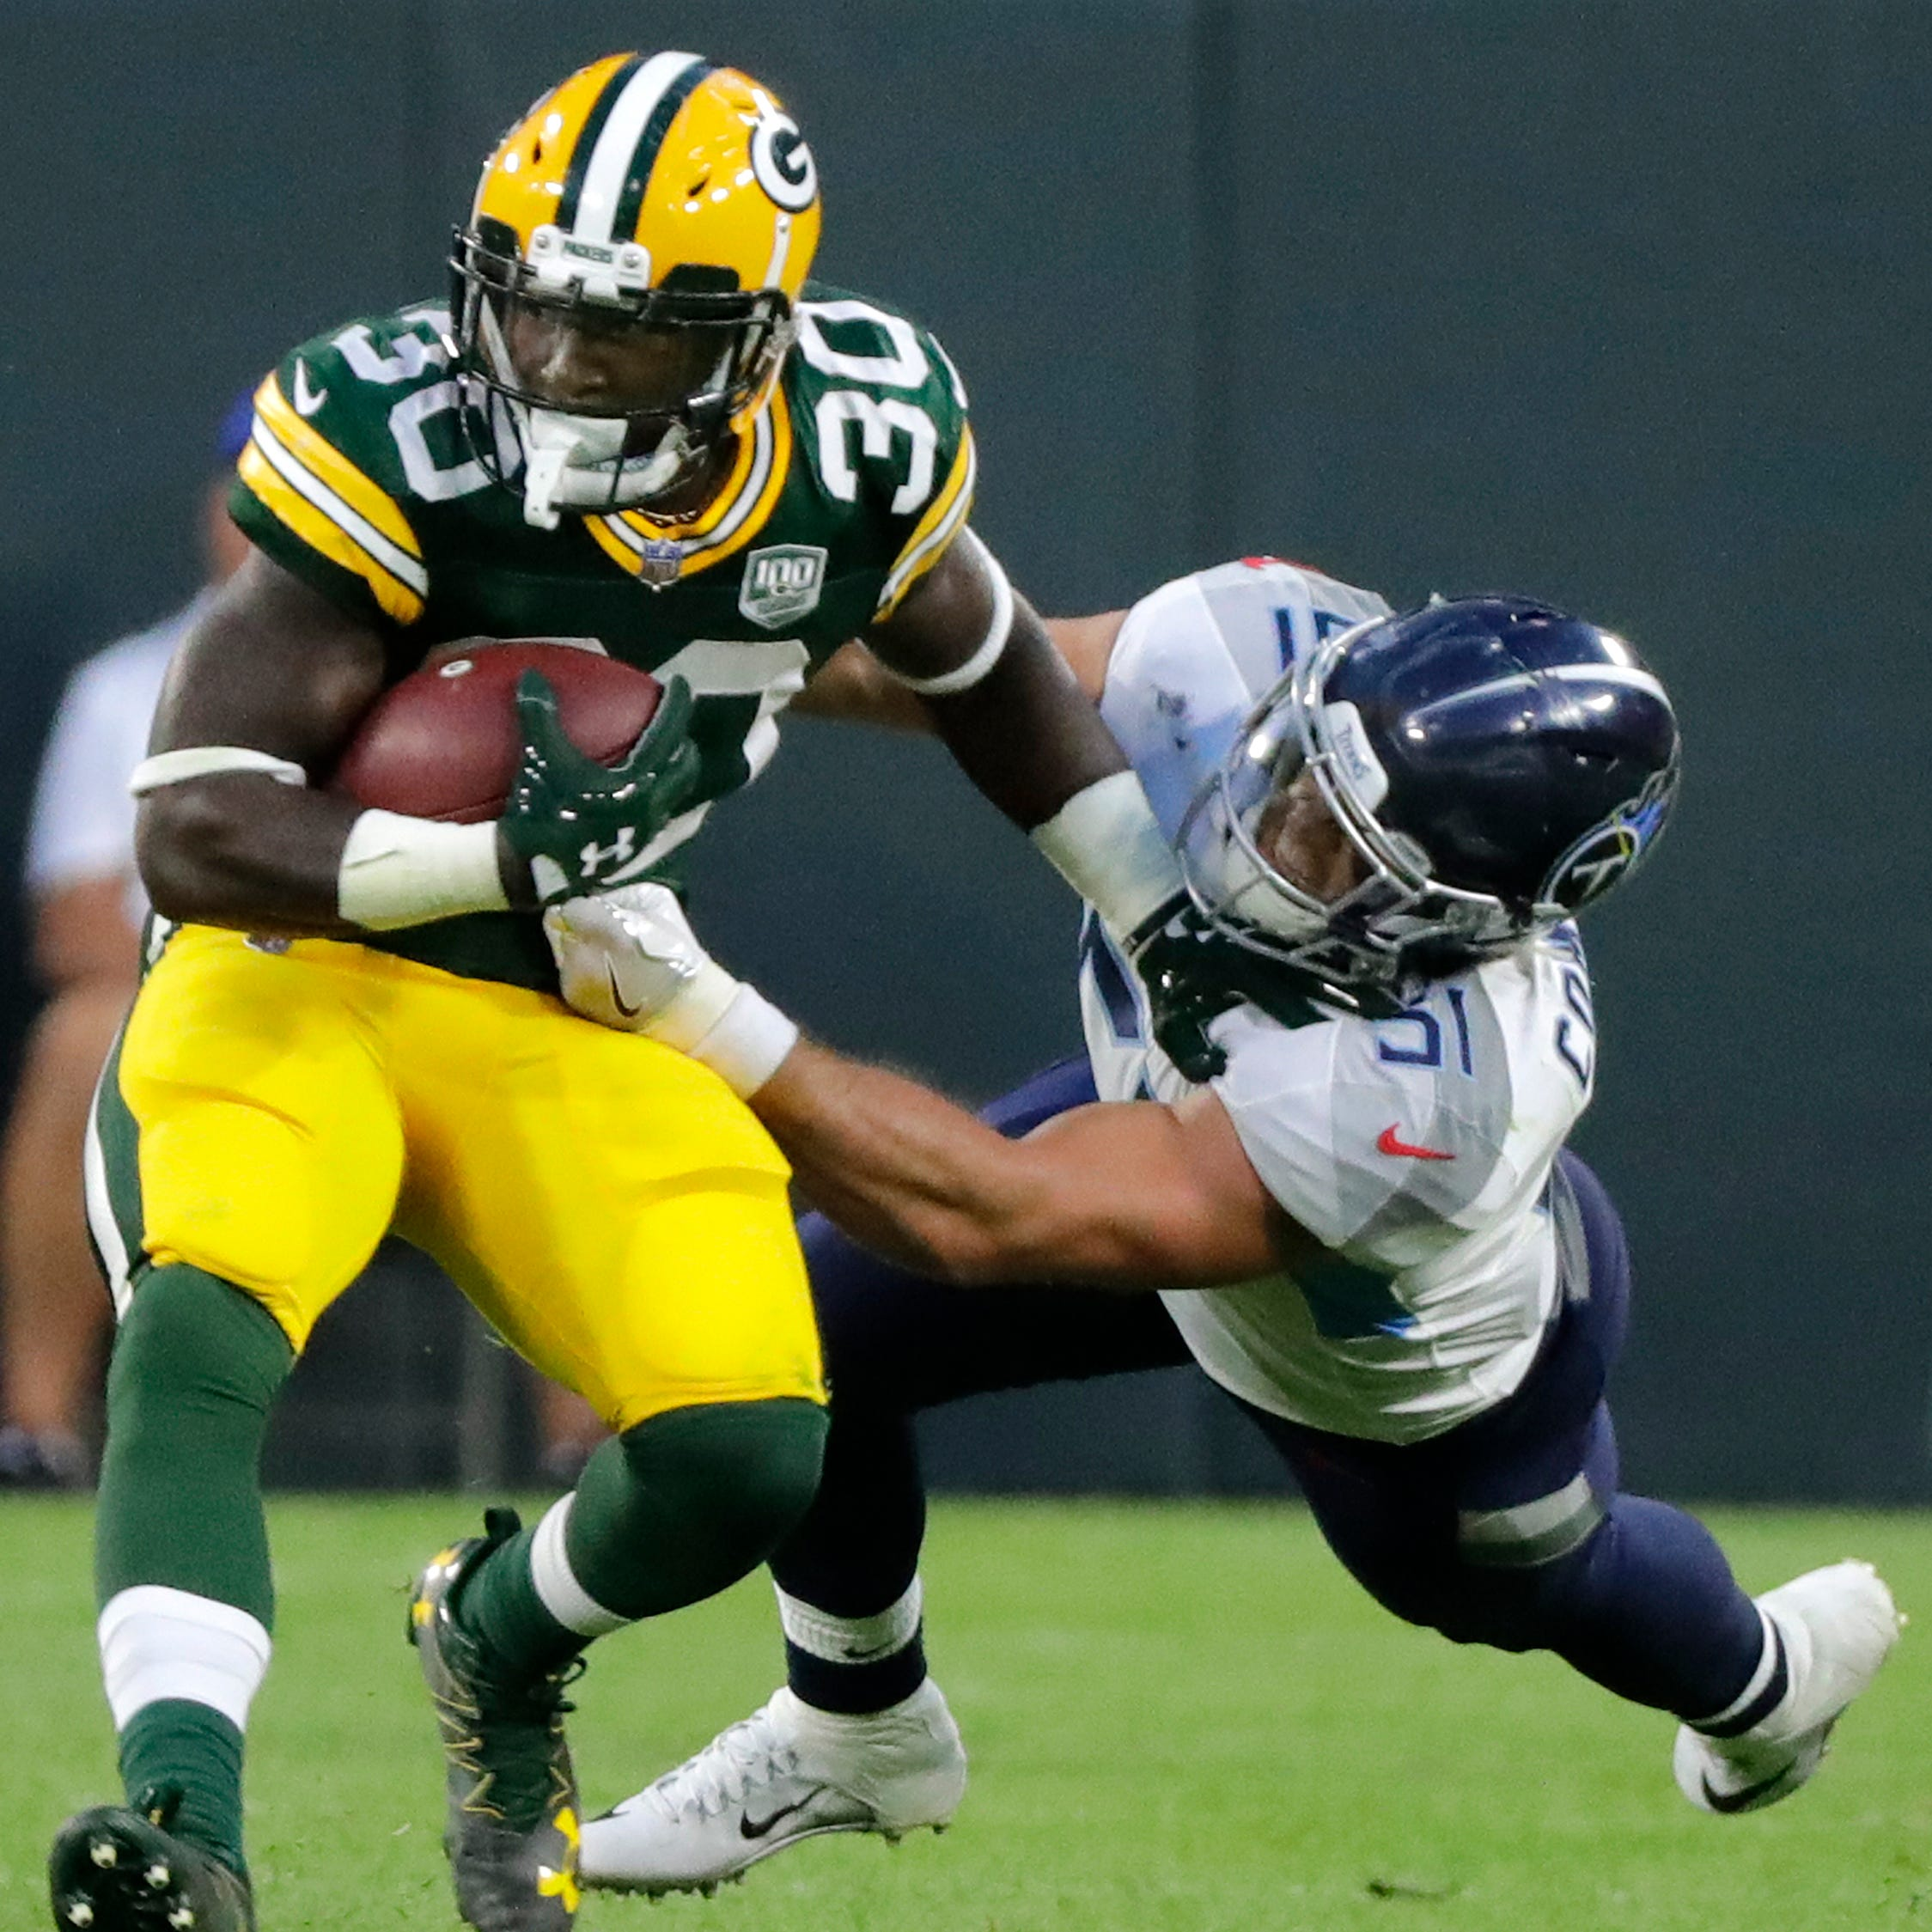 Packers' Jamaal Williams calls tackle that injured ankle 'most definitely' a dirty play